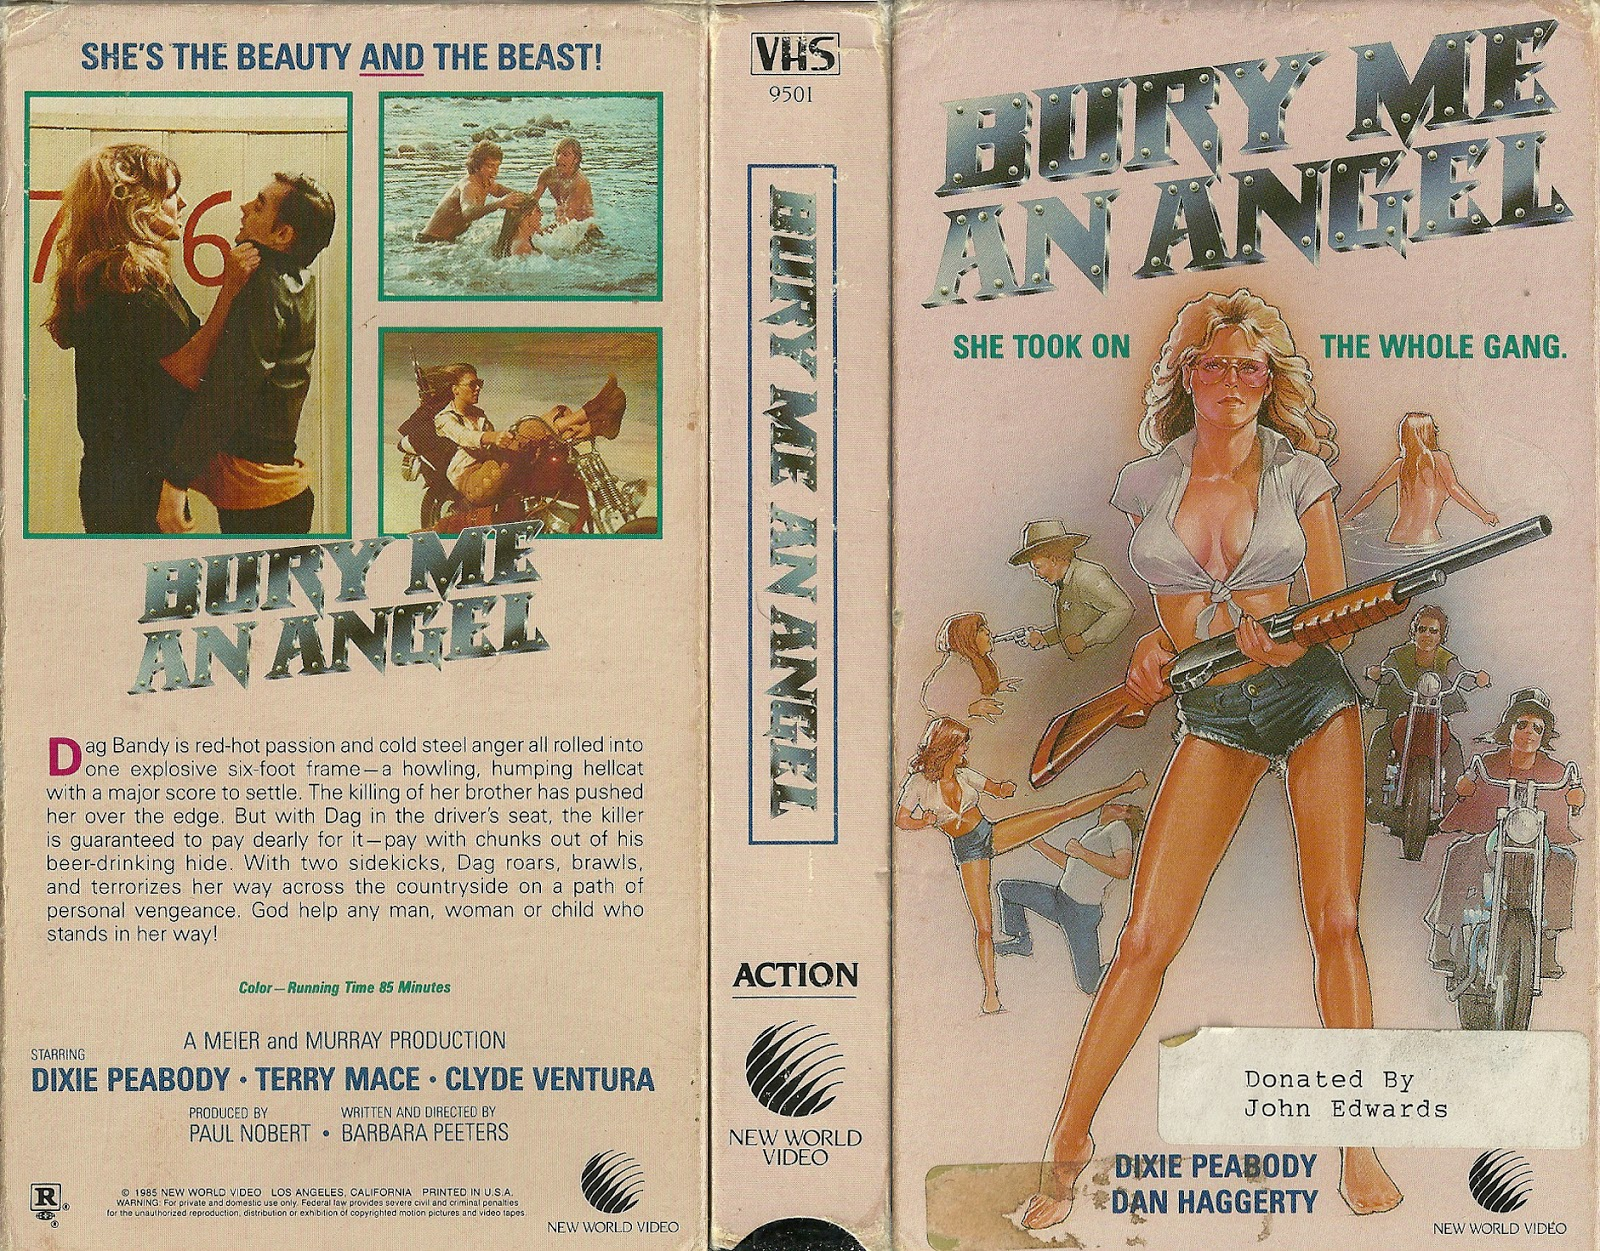 Bury Me An Angel VHS cover